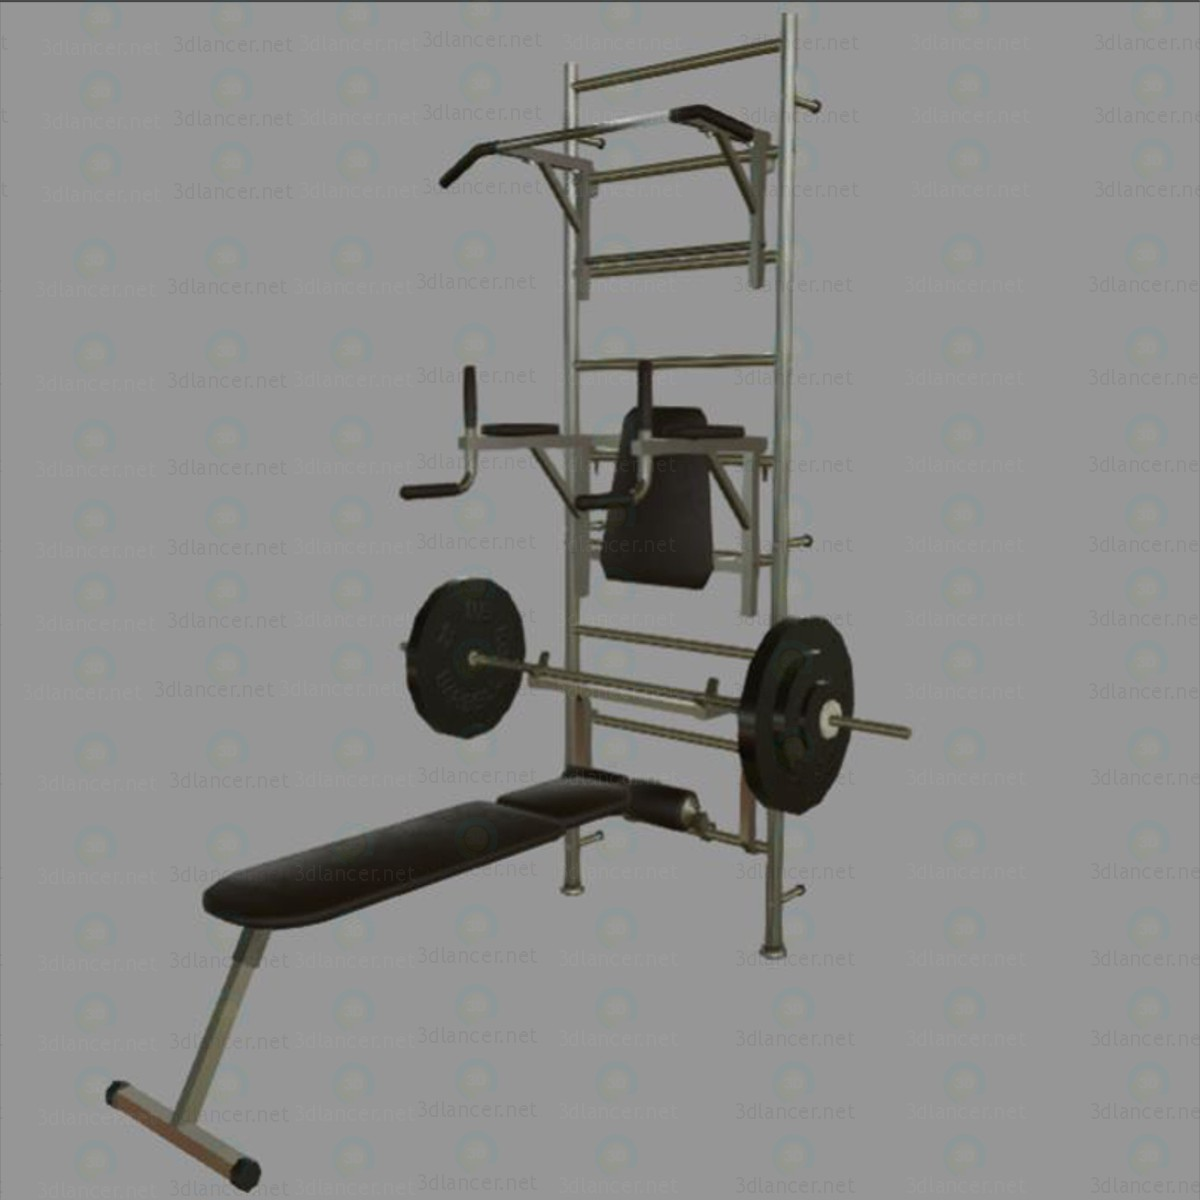 3d Gym Props model buy - render